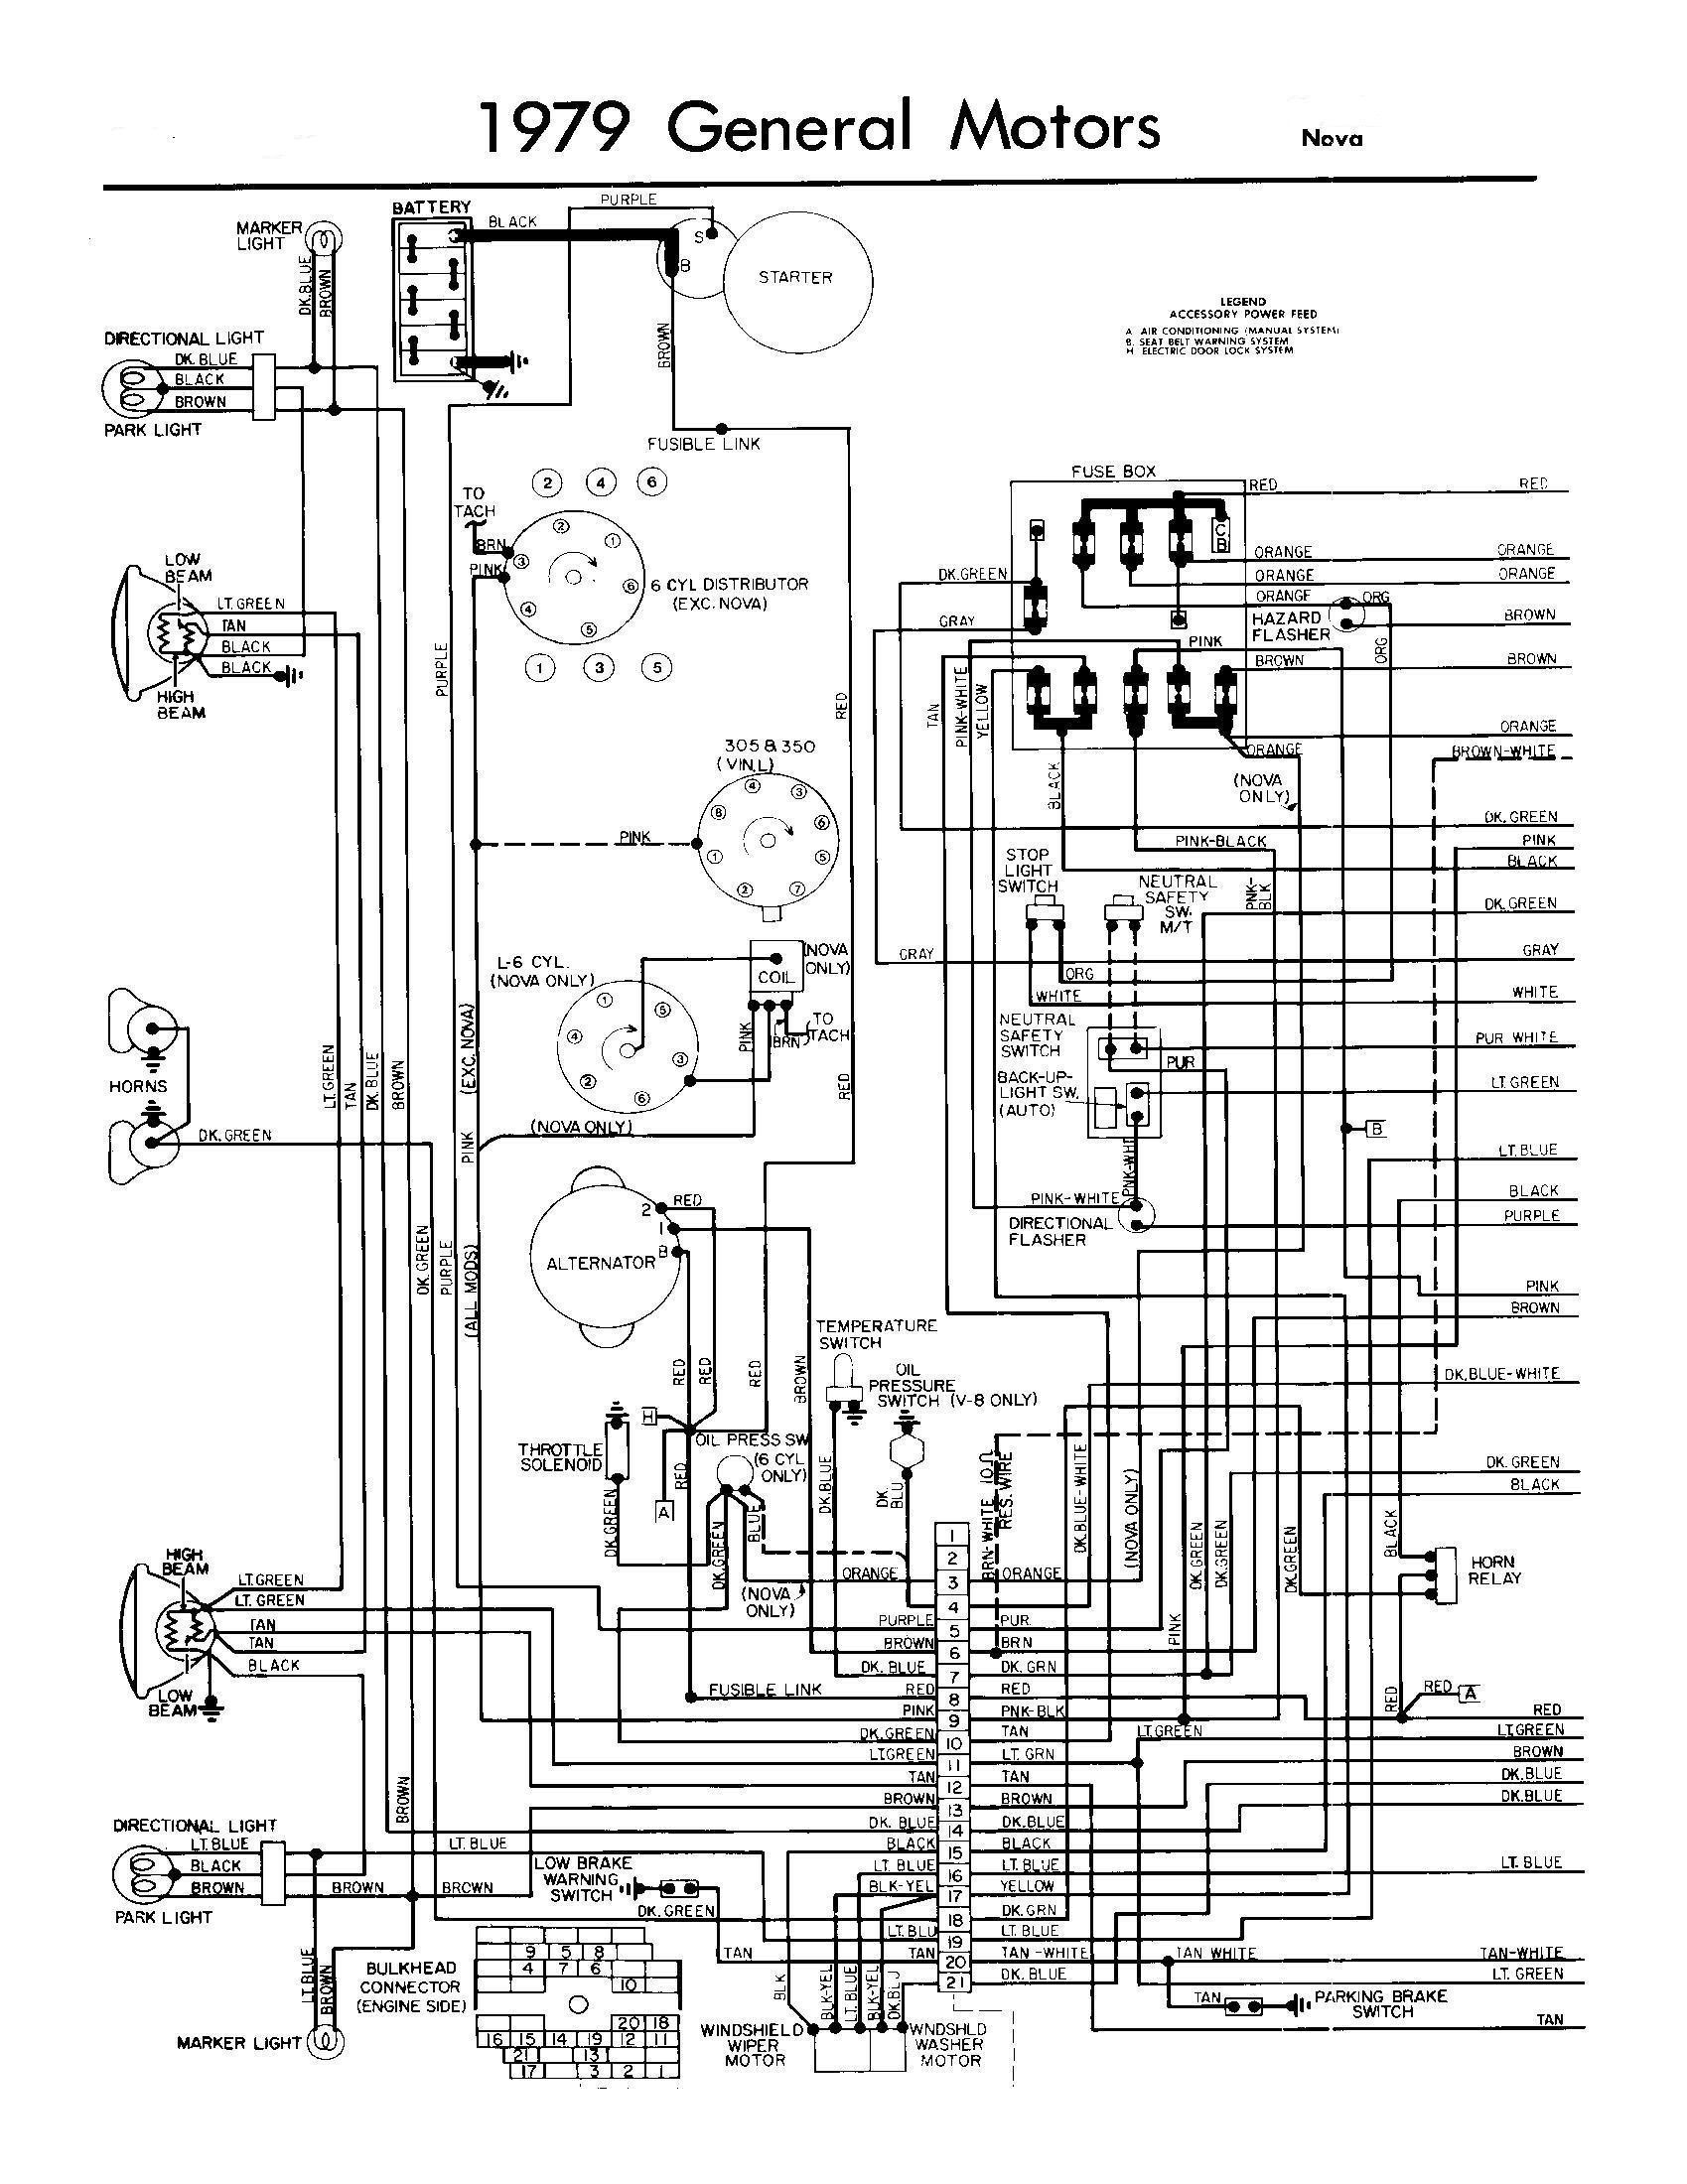 1997 trans am stereo wiring diagram caterpillar 3208 marine engine wiring diagram gallery #4